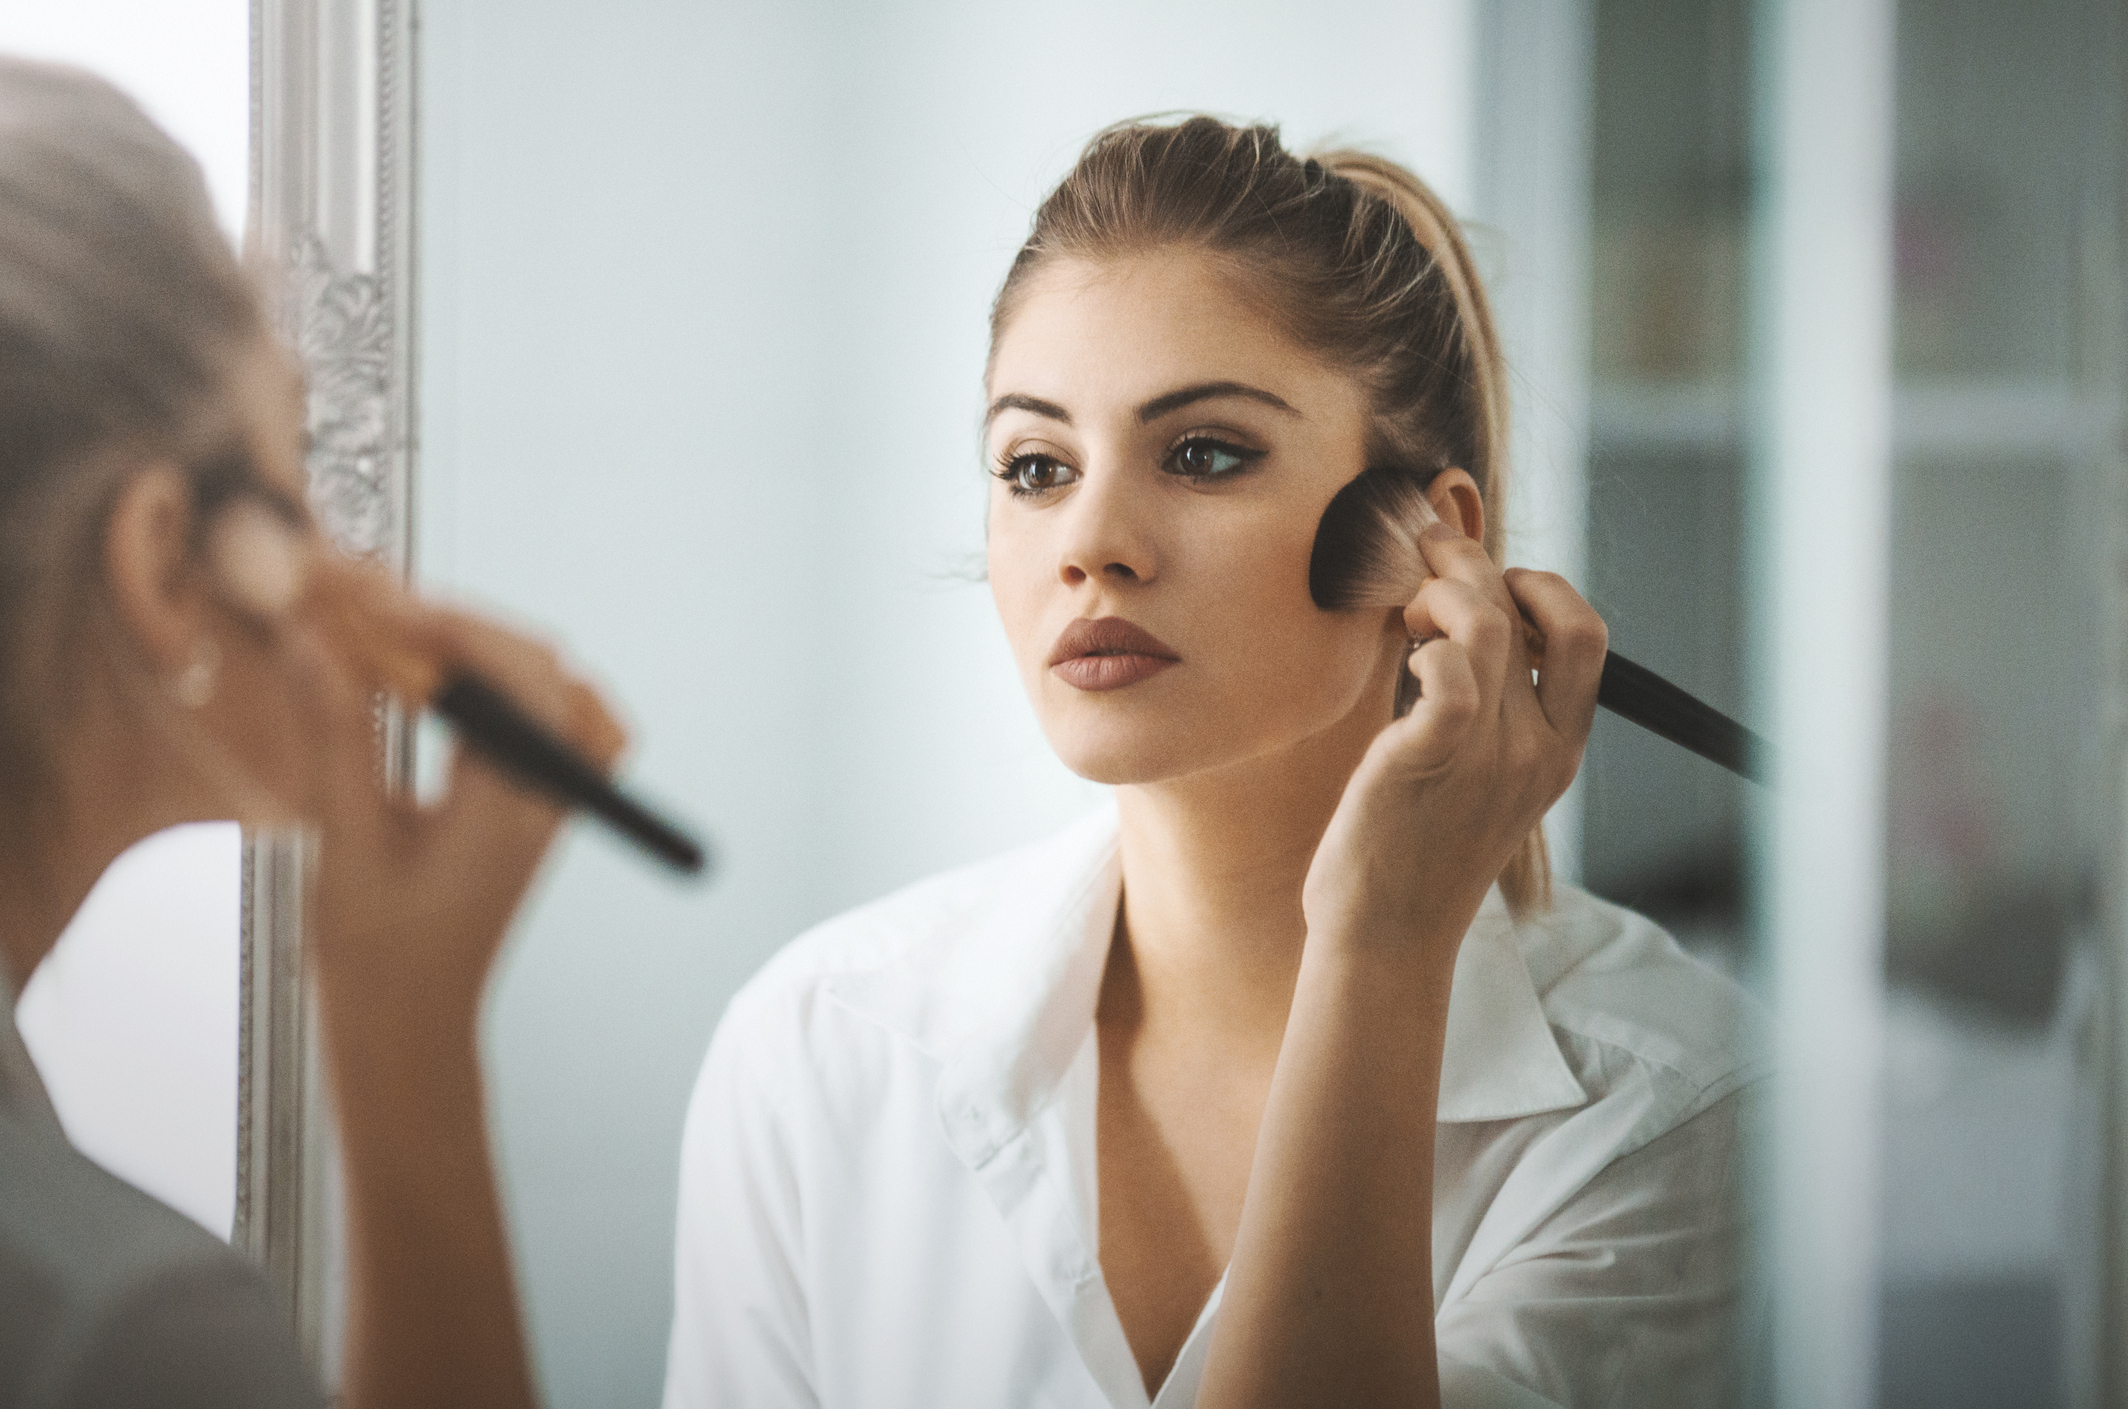 Oldies But Goodies - Top Makeup Looks From 20th Century Hollywood Glamour - Morning makeup routine. - beauty tips - makeup ideas - Photo by CoffeeAndMilk via iStock by Getty Images